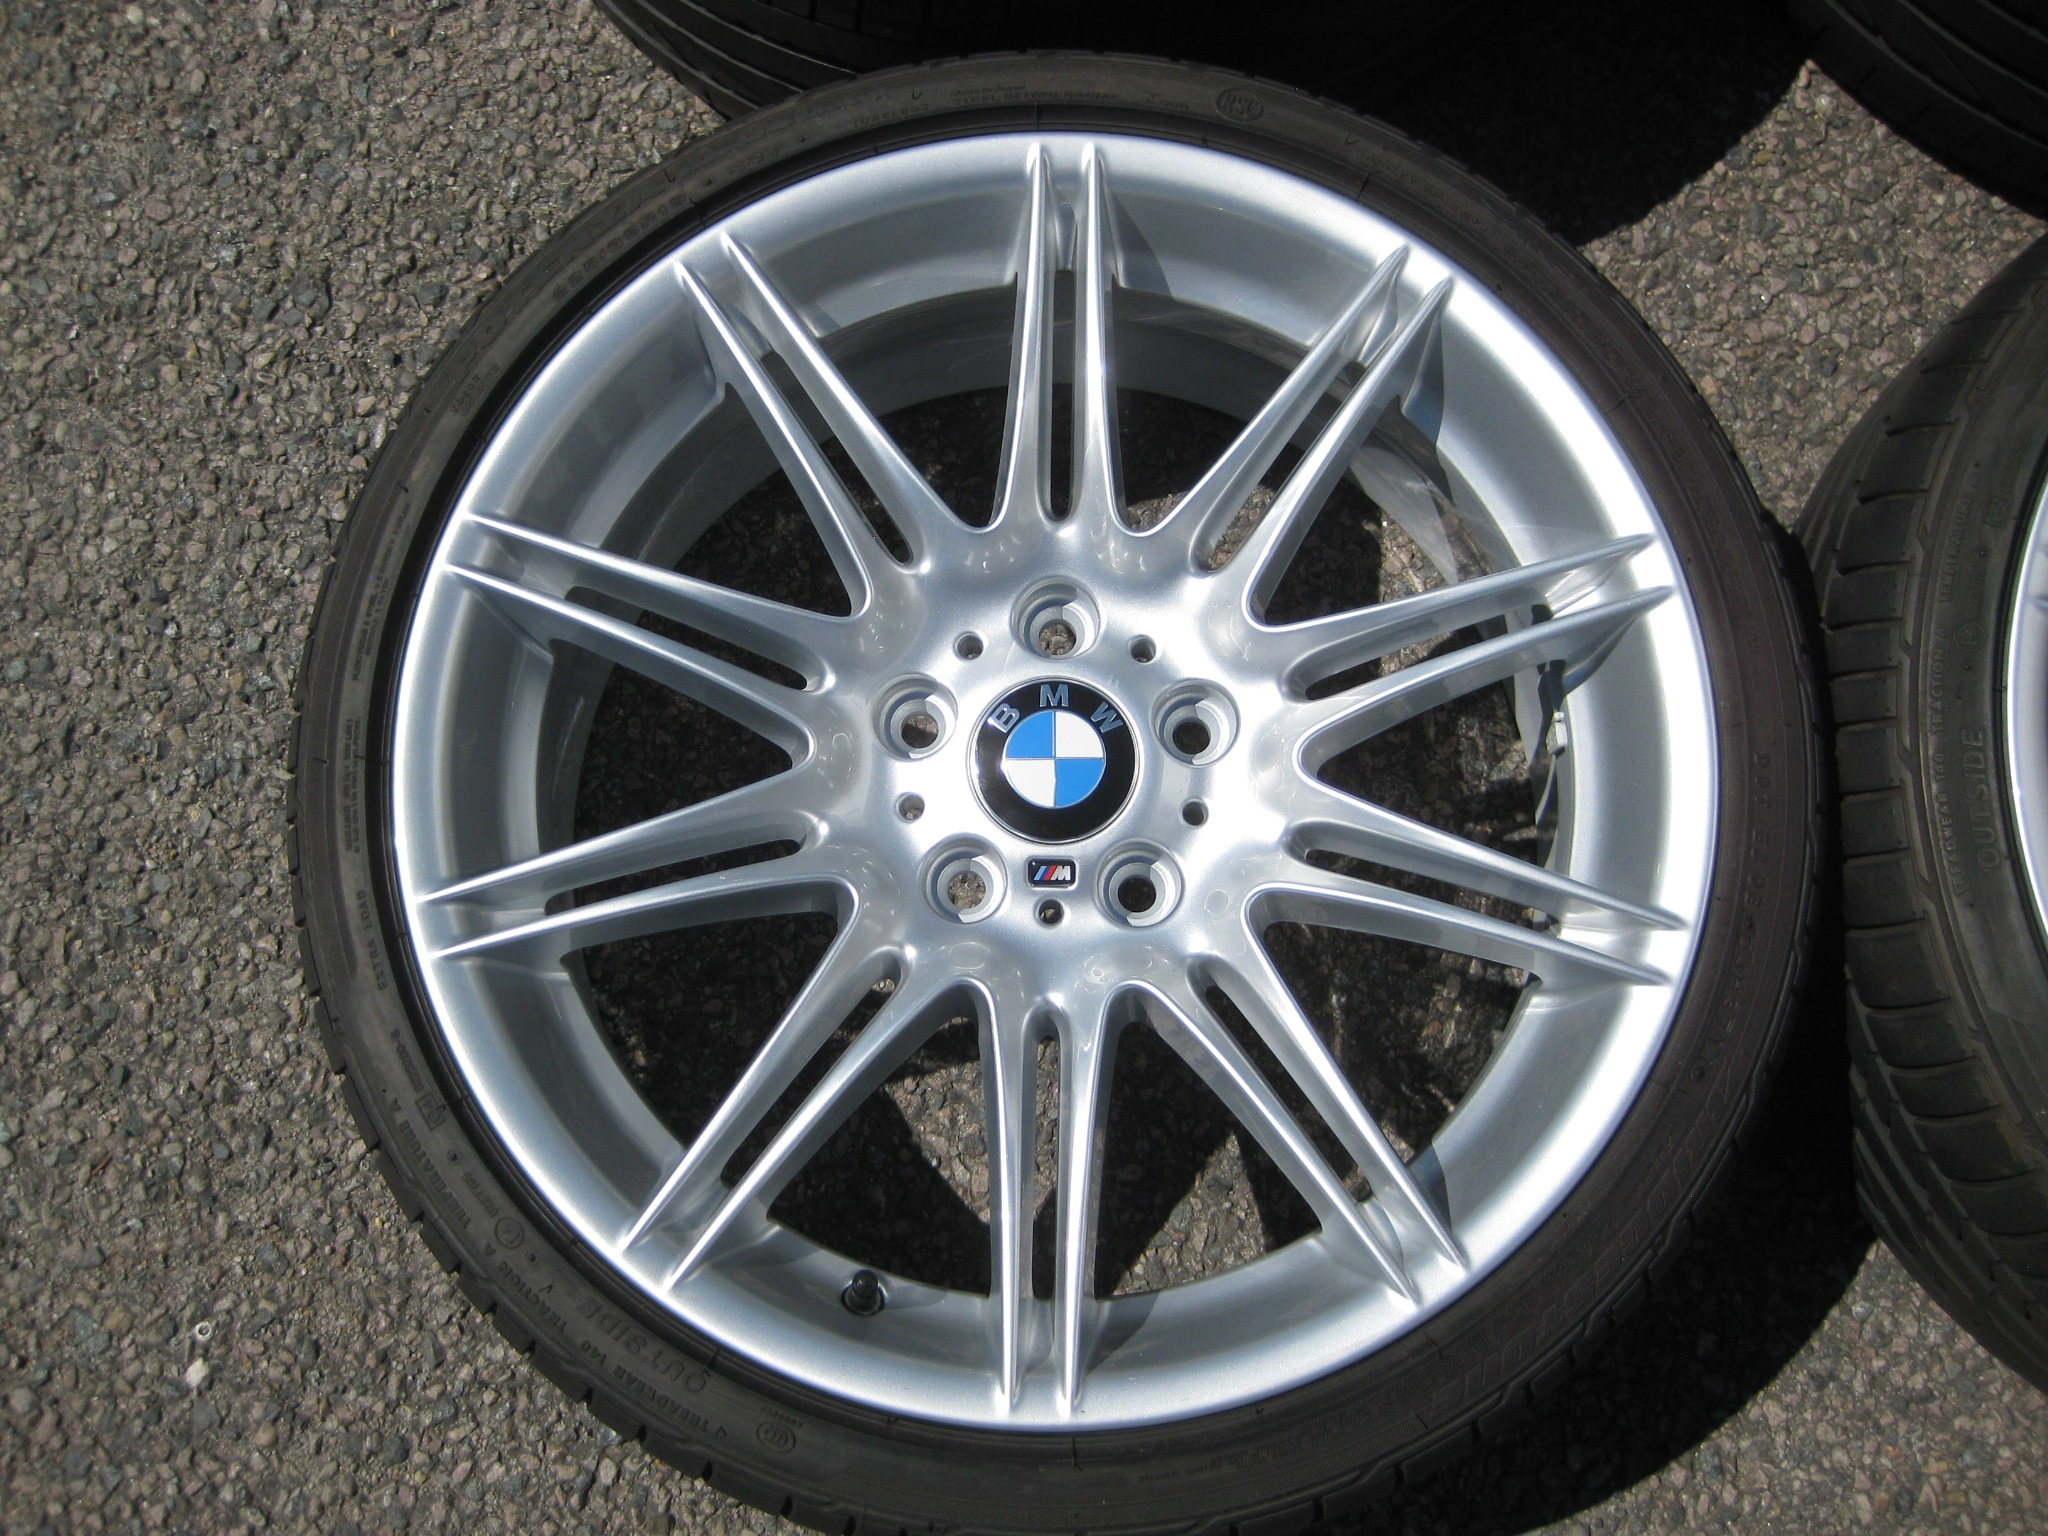 "USED 19"" GENUINE BMW STYLE 225M SPORT E92 ALLOY WHEELS, WIDE REAR, FULLY REFURBED INC GOOD BRIDGESTONE RUNFLATS"